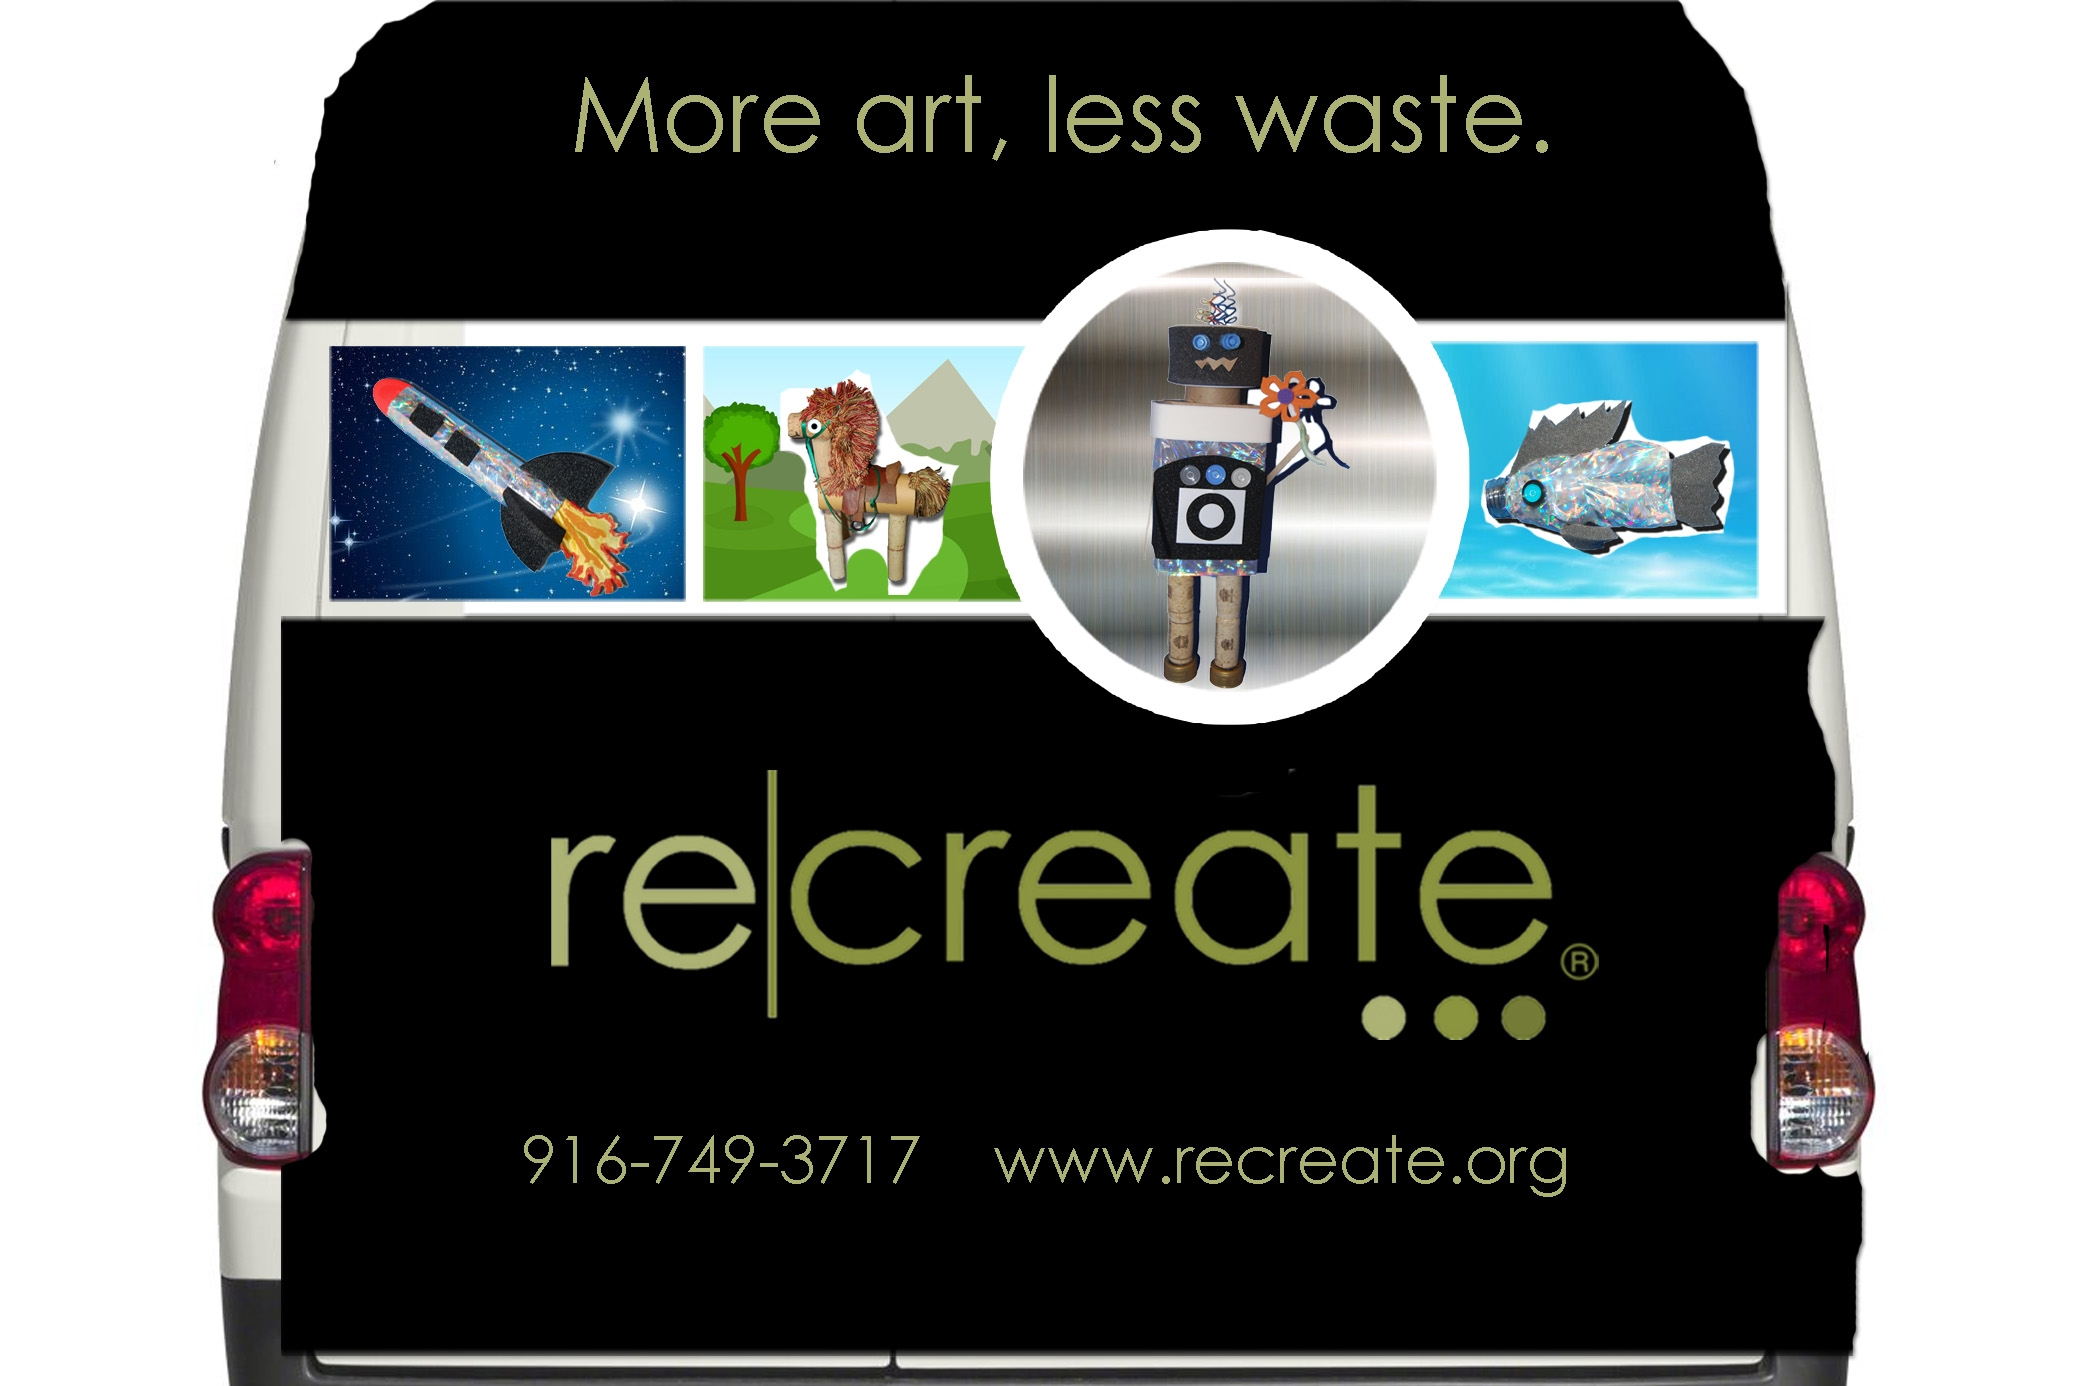 More Art, Less Waste Program